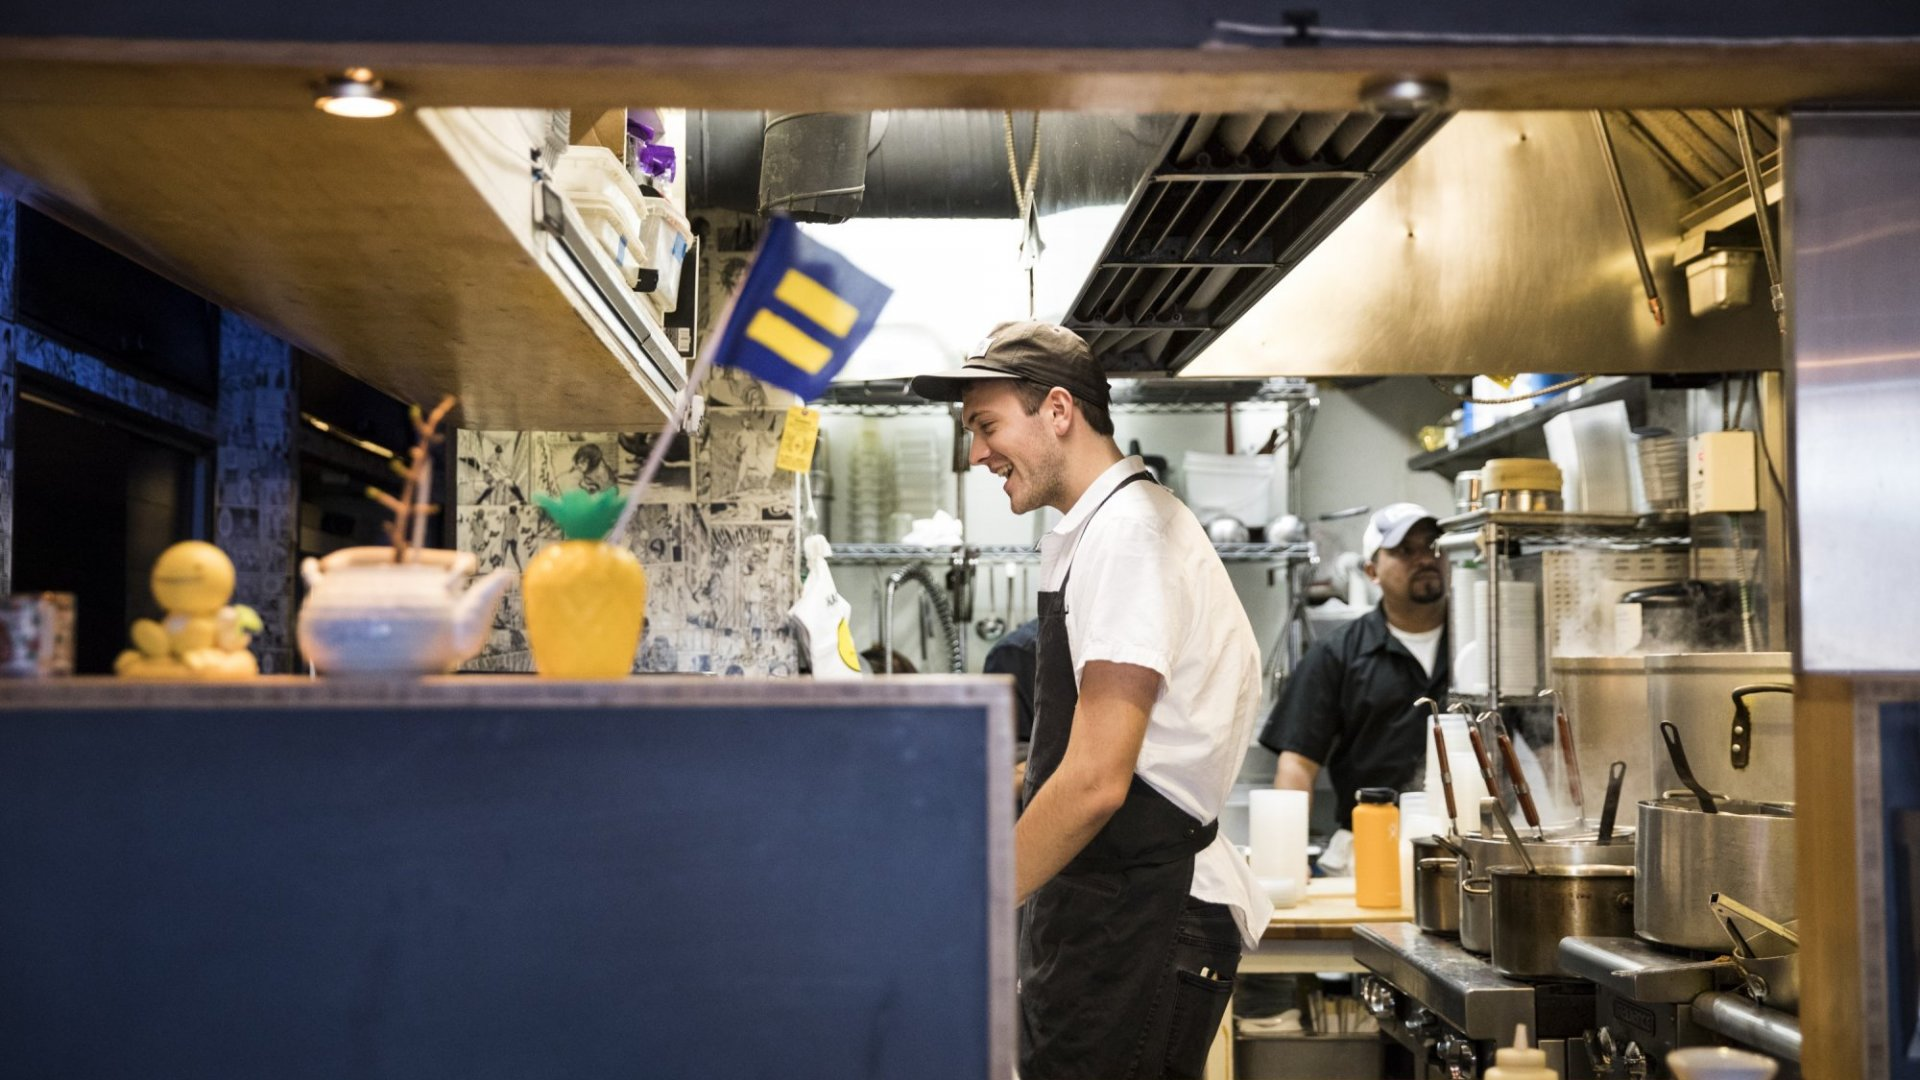 Staff work in the kitchen of Toki Underground which will be closed on Thursday in order to support its staff that are participating in the 'Day Without Immigrants' boycott against President Trumps immigration policies in Washington, USA on February 15, 2017.